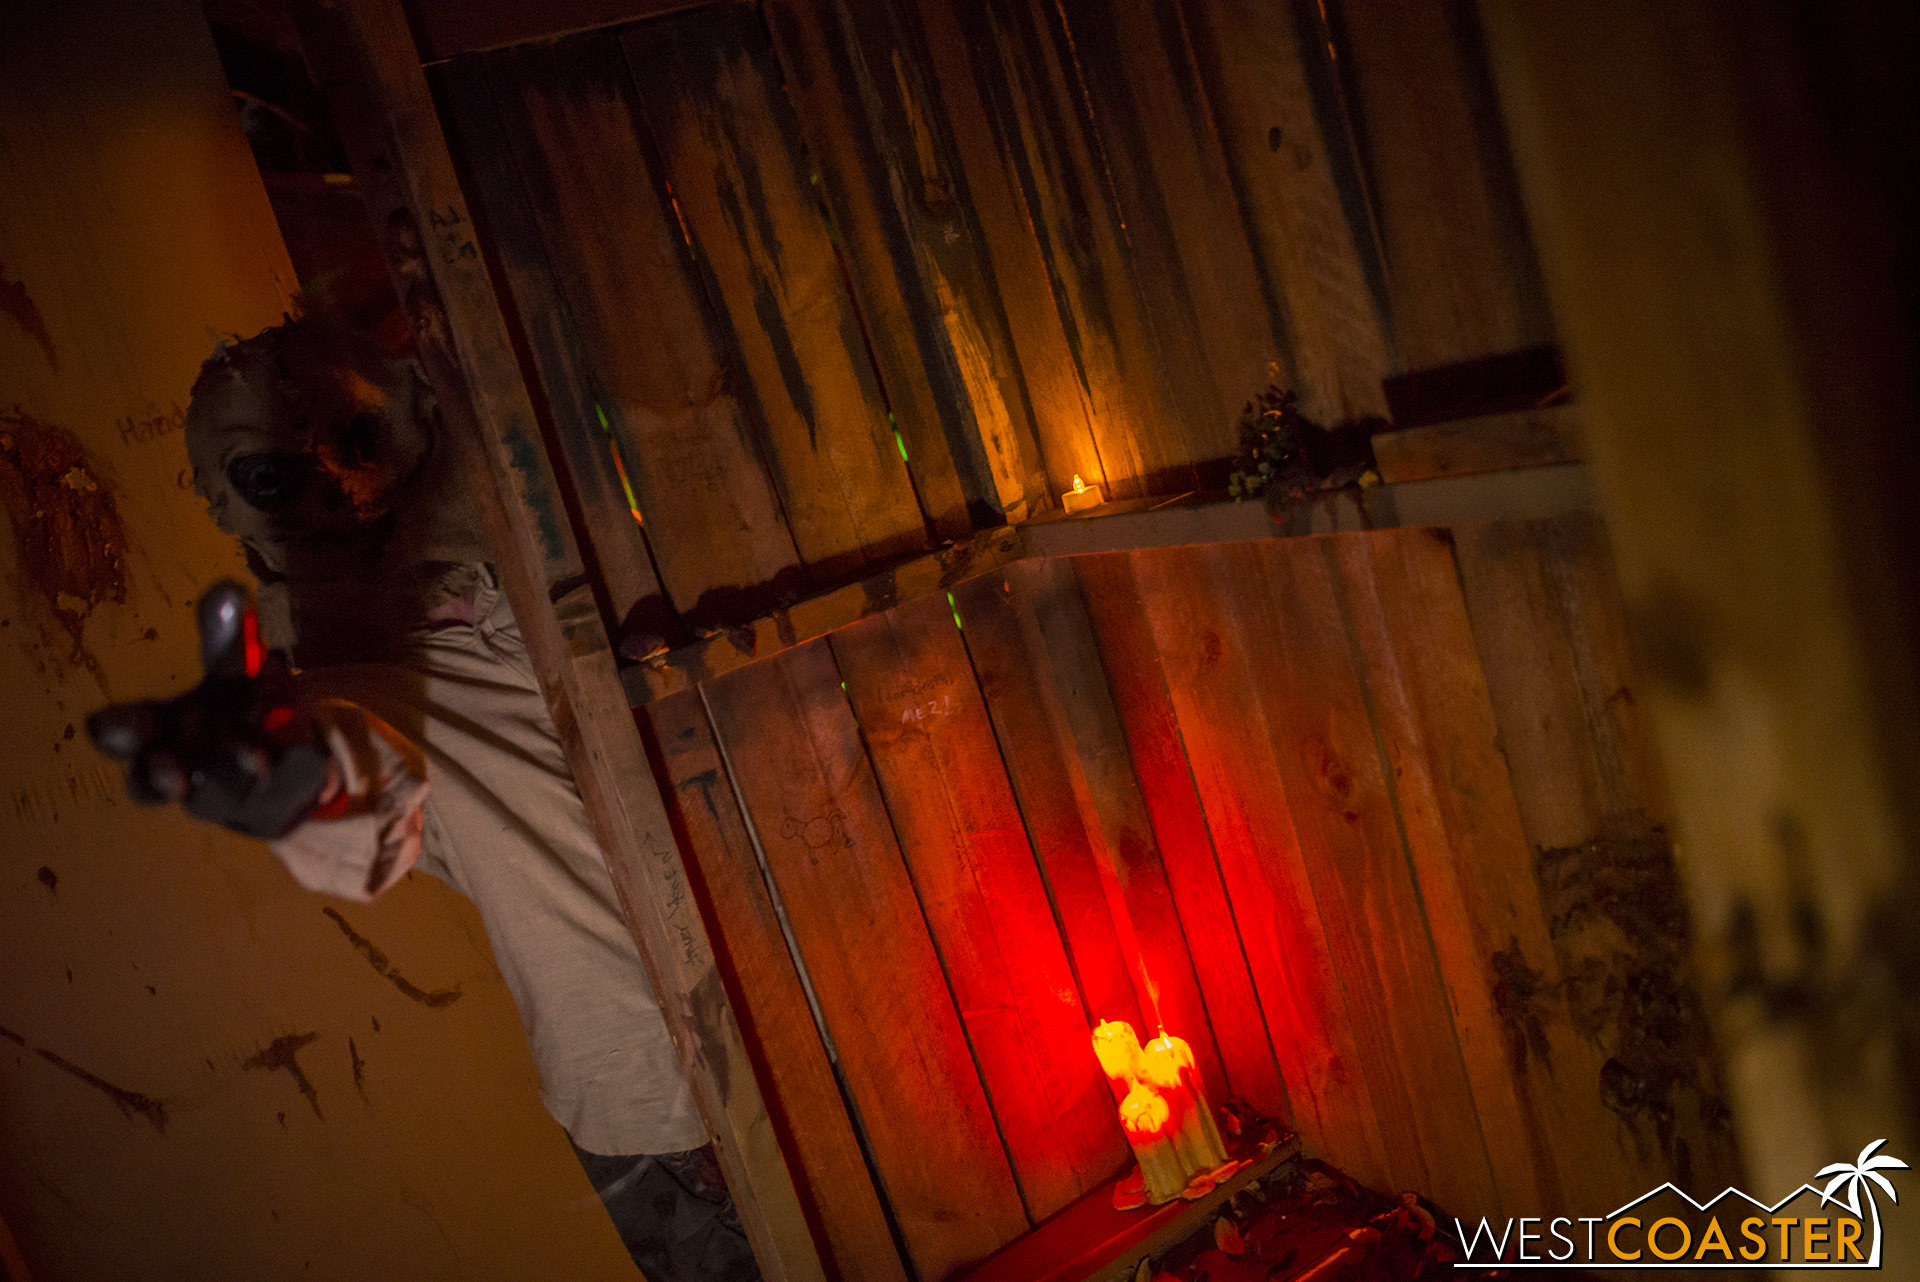 Guests do pass through the outhouse again this year, but no spoilers on what happens there.